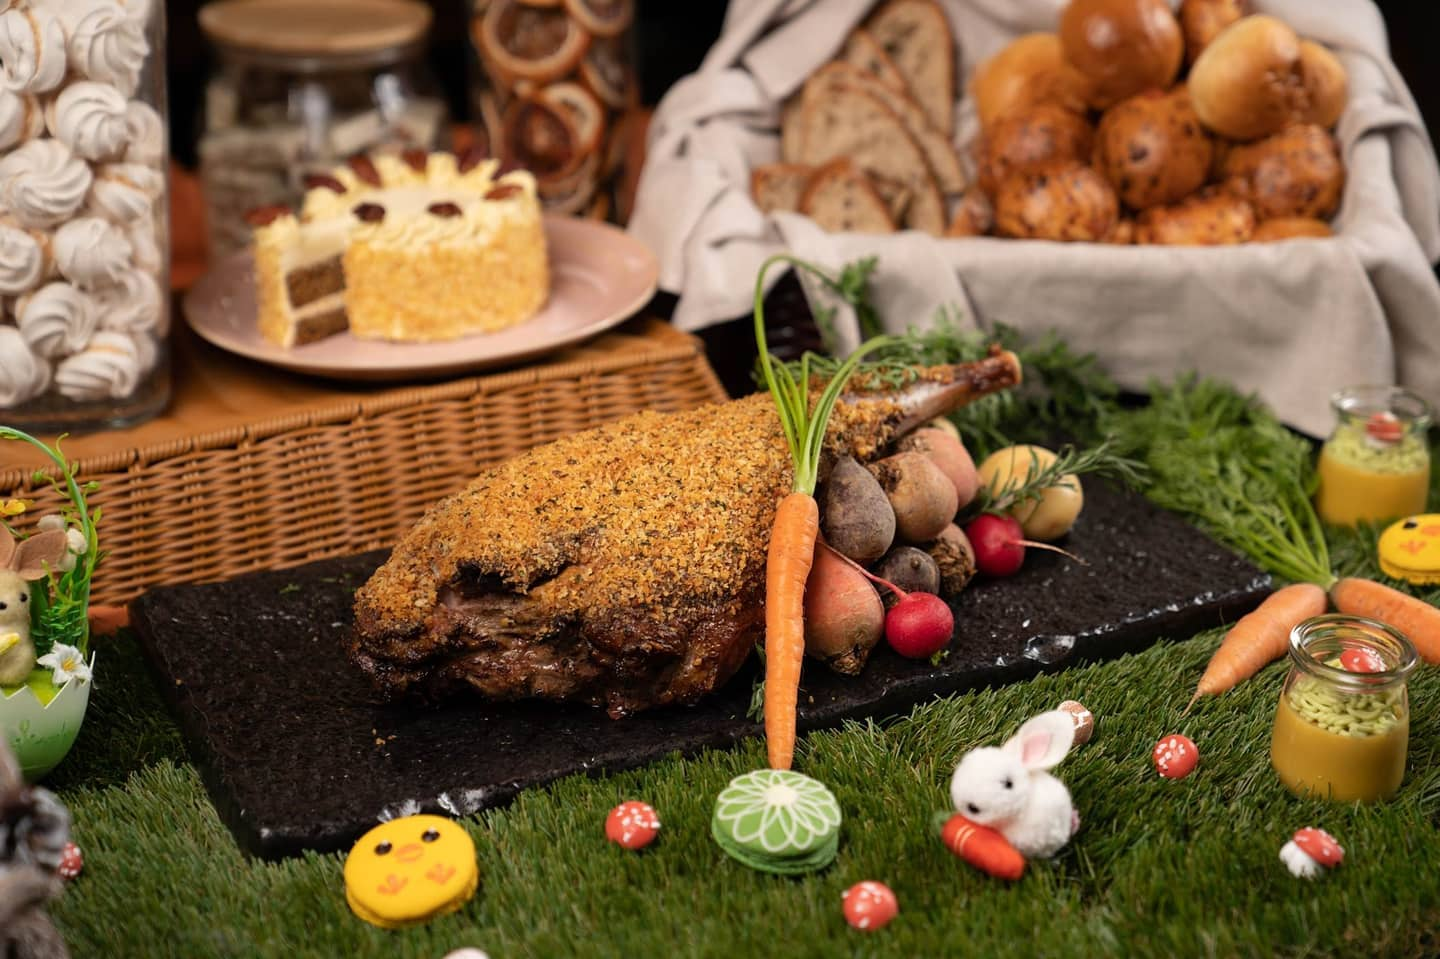 Enjoy the springtime holiday with an Easter themed brunch buffet at FEAST on 2 – 6 April from 11:30am – 2:30pm.  Special cocktails for adults and a decorated Kids Corner for children will also be available.  For details and reservations, please call FEAST team at 3968 3777 or email feastreservations@east-hongkong.com  #EatatEAST #atEAST #EASTHongKong #FEAST